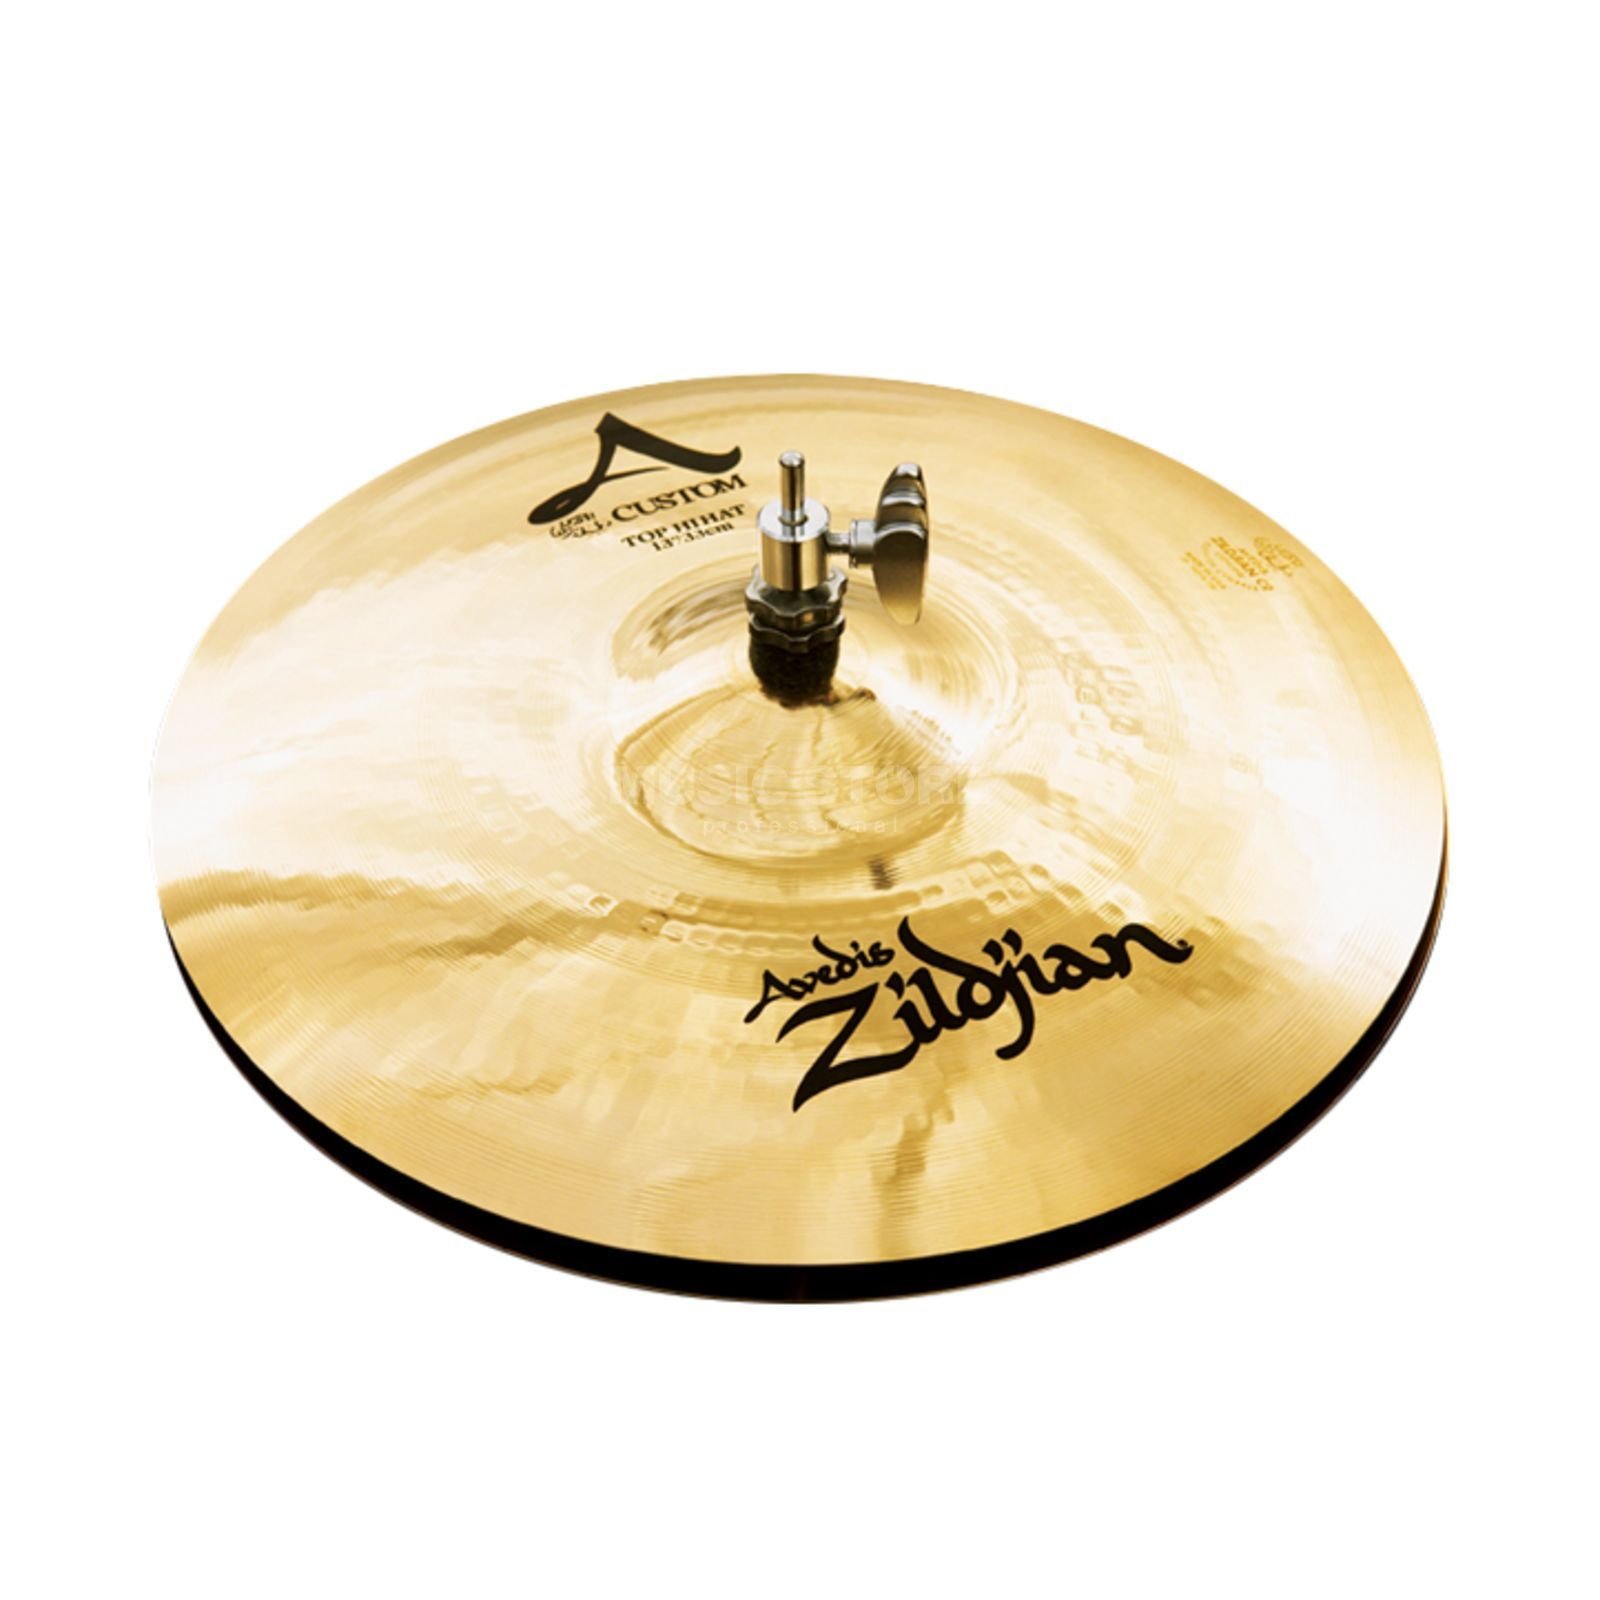 "Zildjian A-Custom HiHat 13"" Brilliant Finish Product Image"